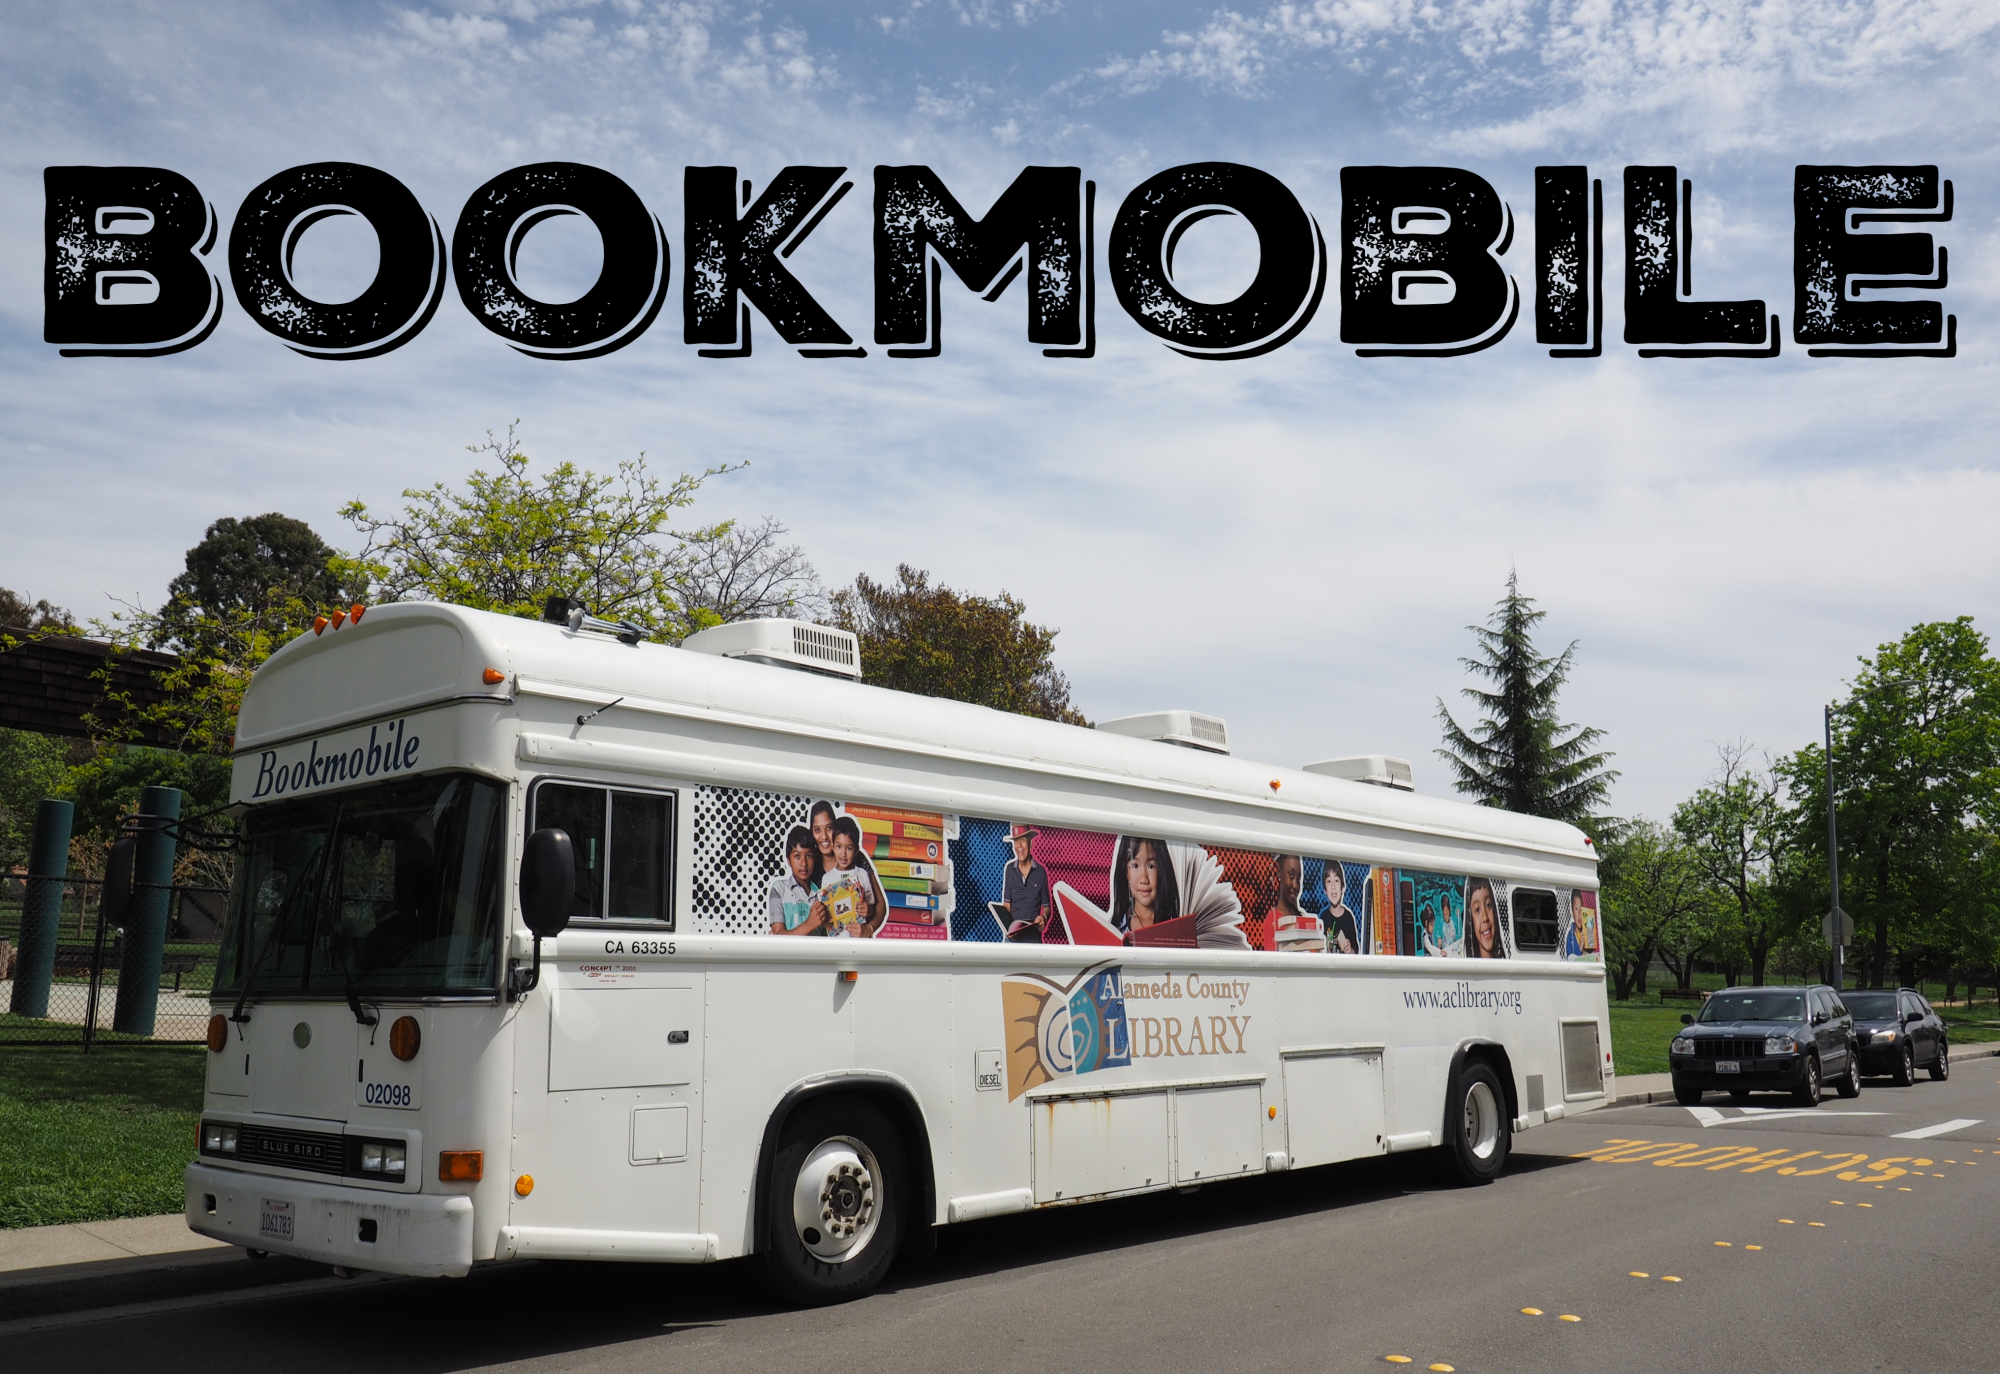 Forest Park School - bookmobile stop